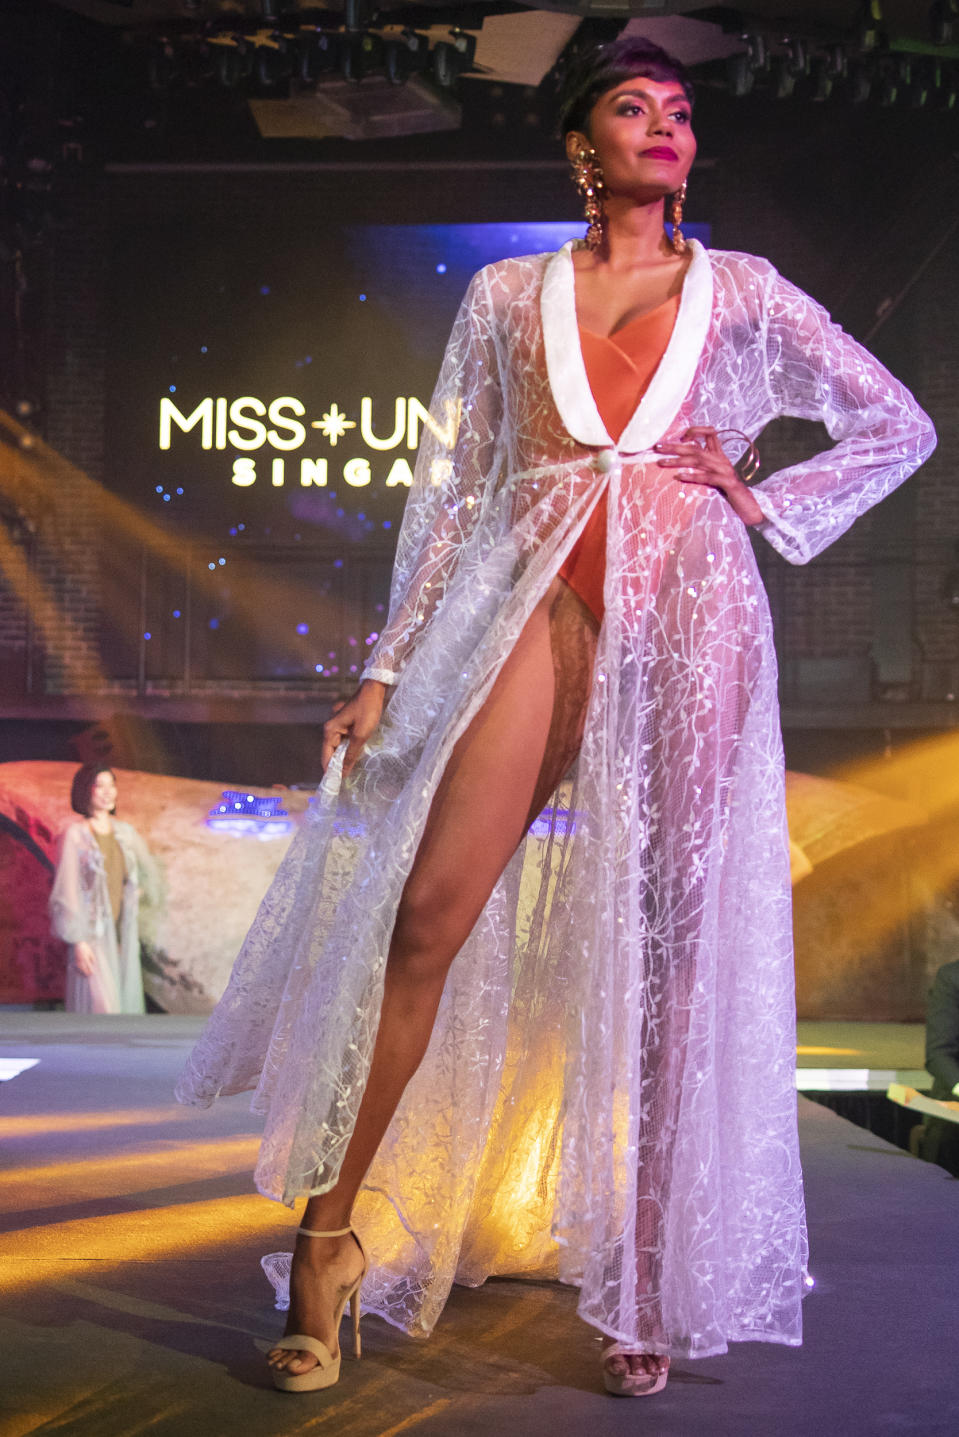 Mohana Phraba competing in the swimwear segment during the 2019 Miss Universe Singapore at Zouk.